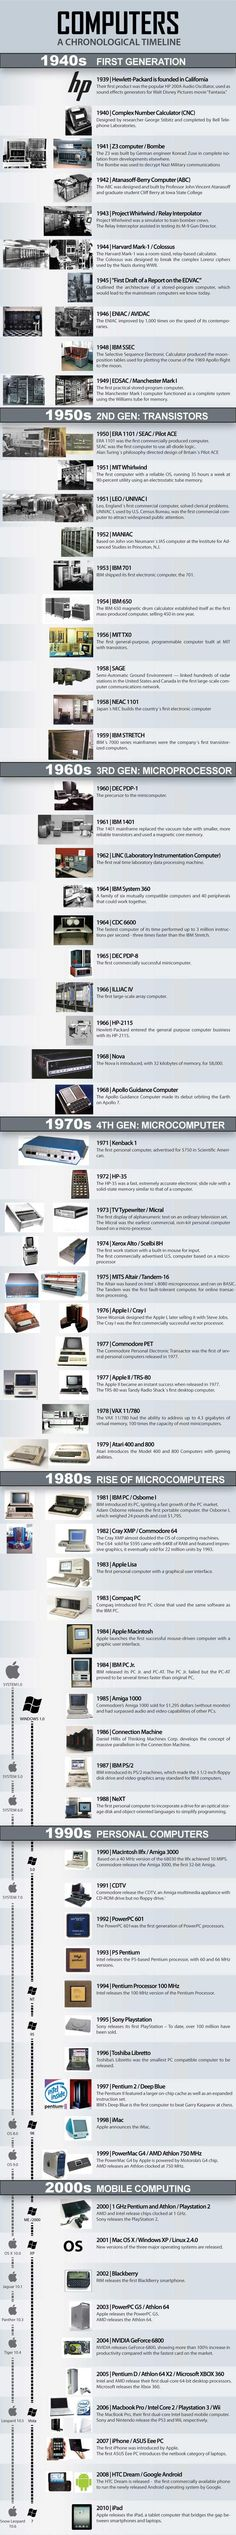 Infographics: Modern Computer Timeline 1940-2010 including mobile computing | | Daily OMG Facts